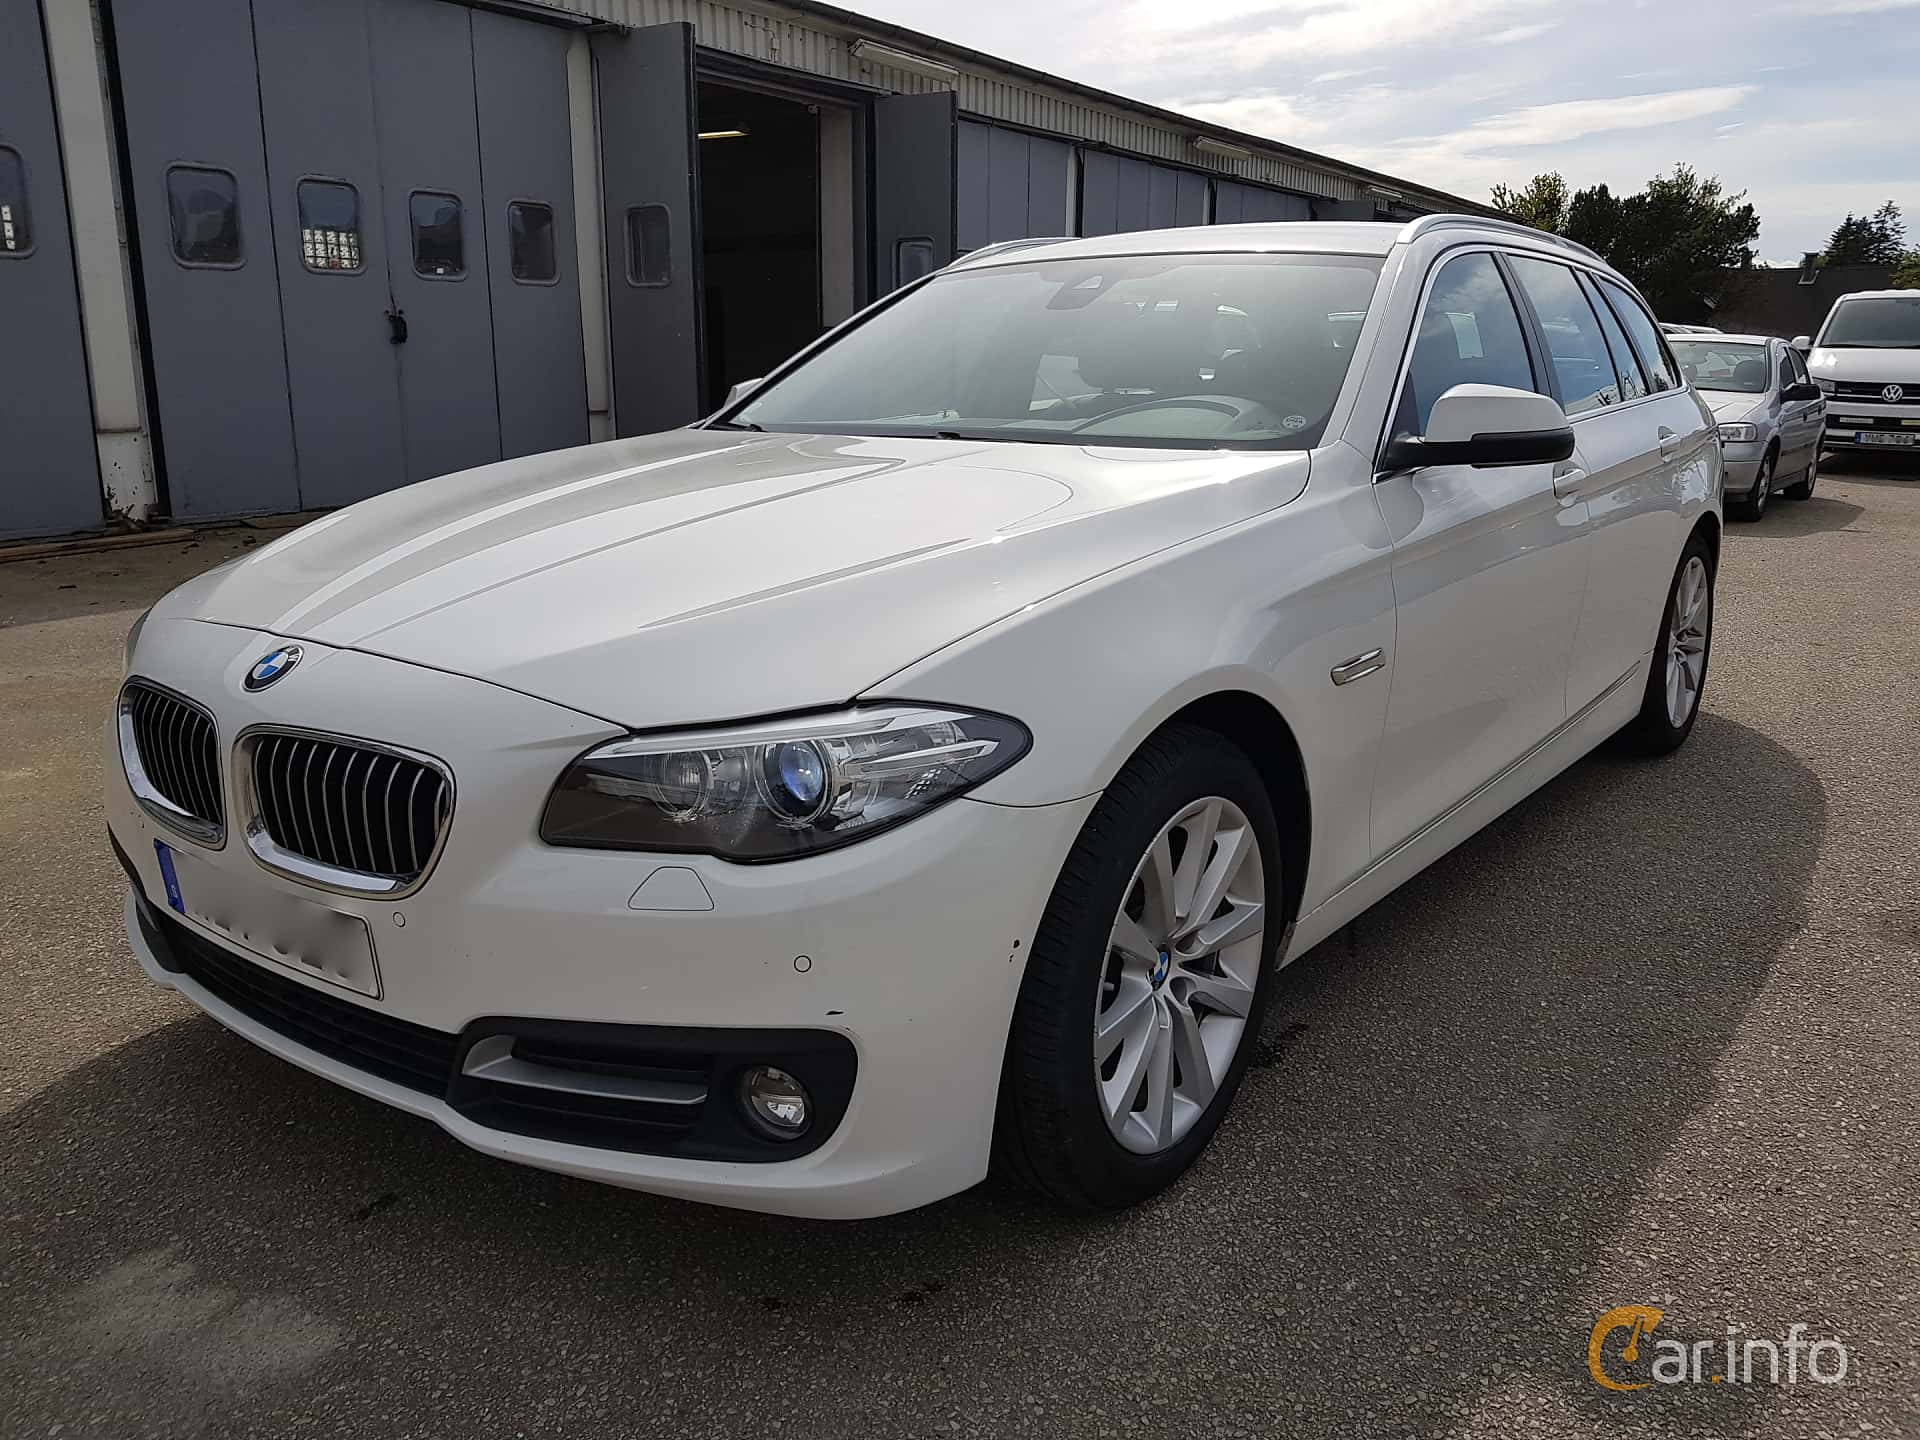 Fram/Sida av BMW 520d xDrive Touring  Steptronic, 190ps, 2017